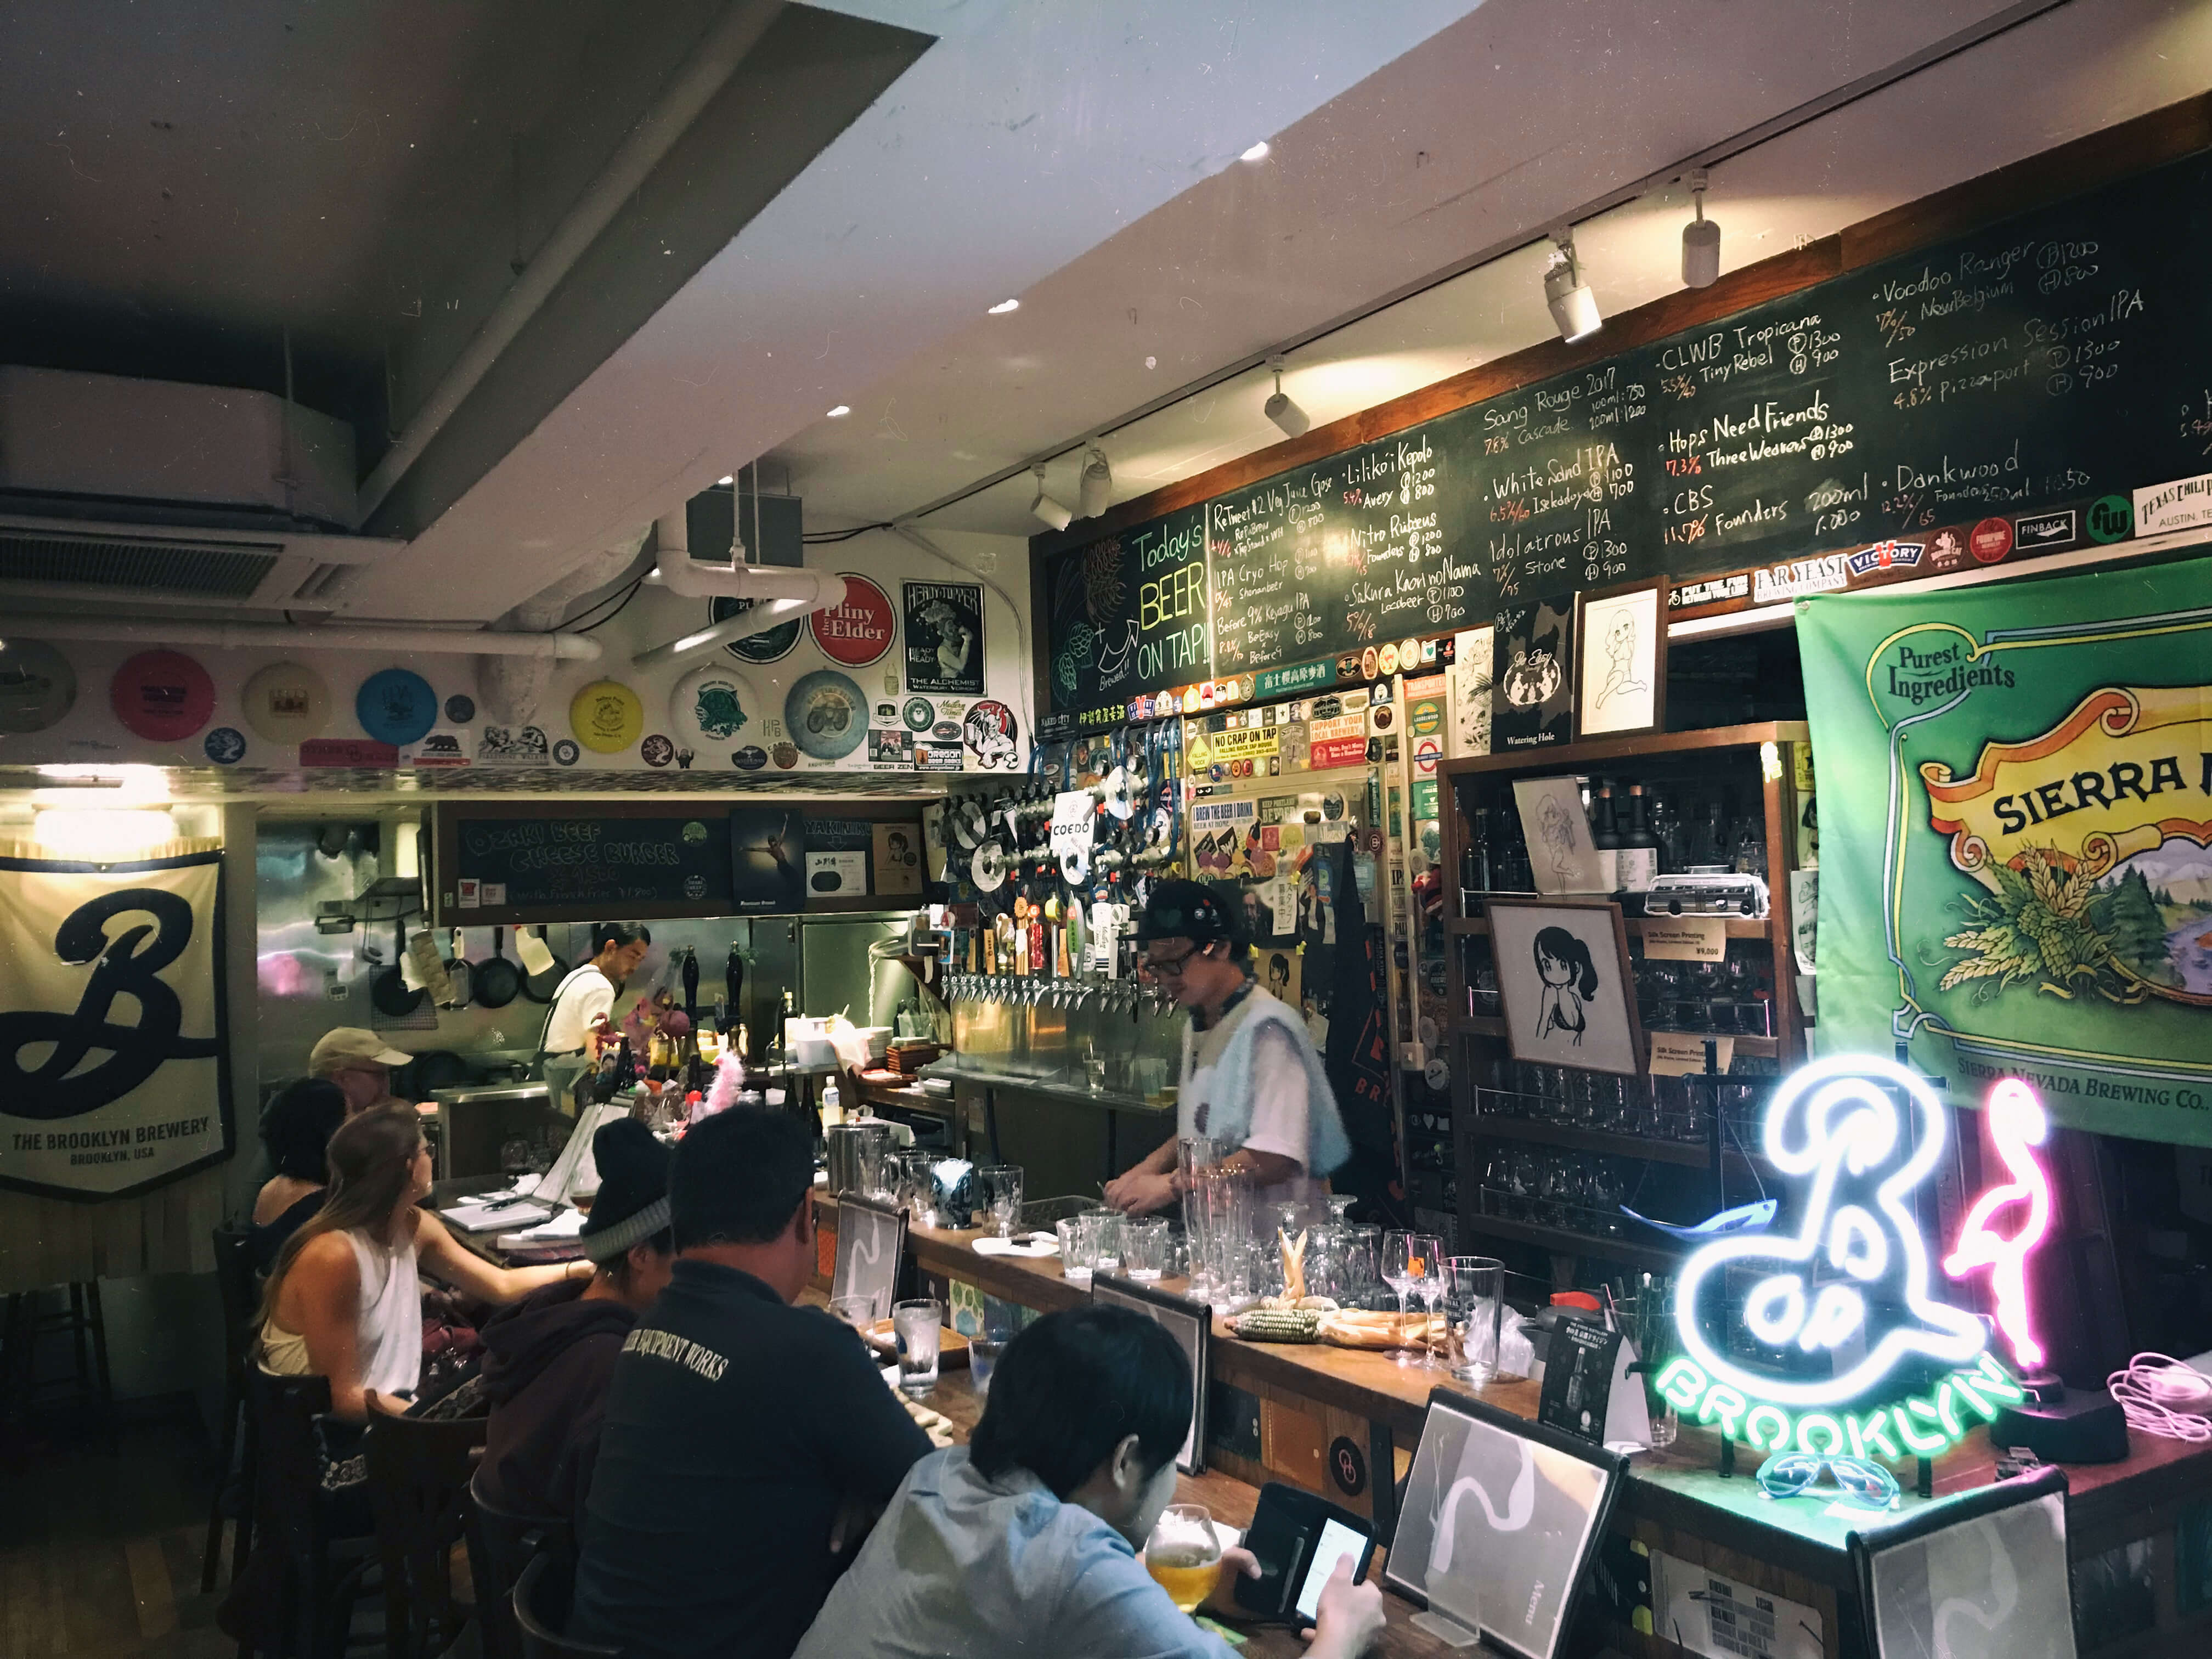 The Watering Hole Bar in Tokyo